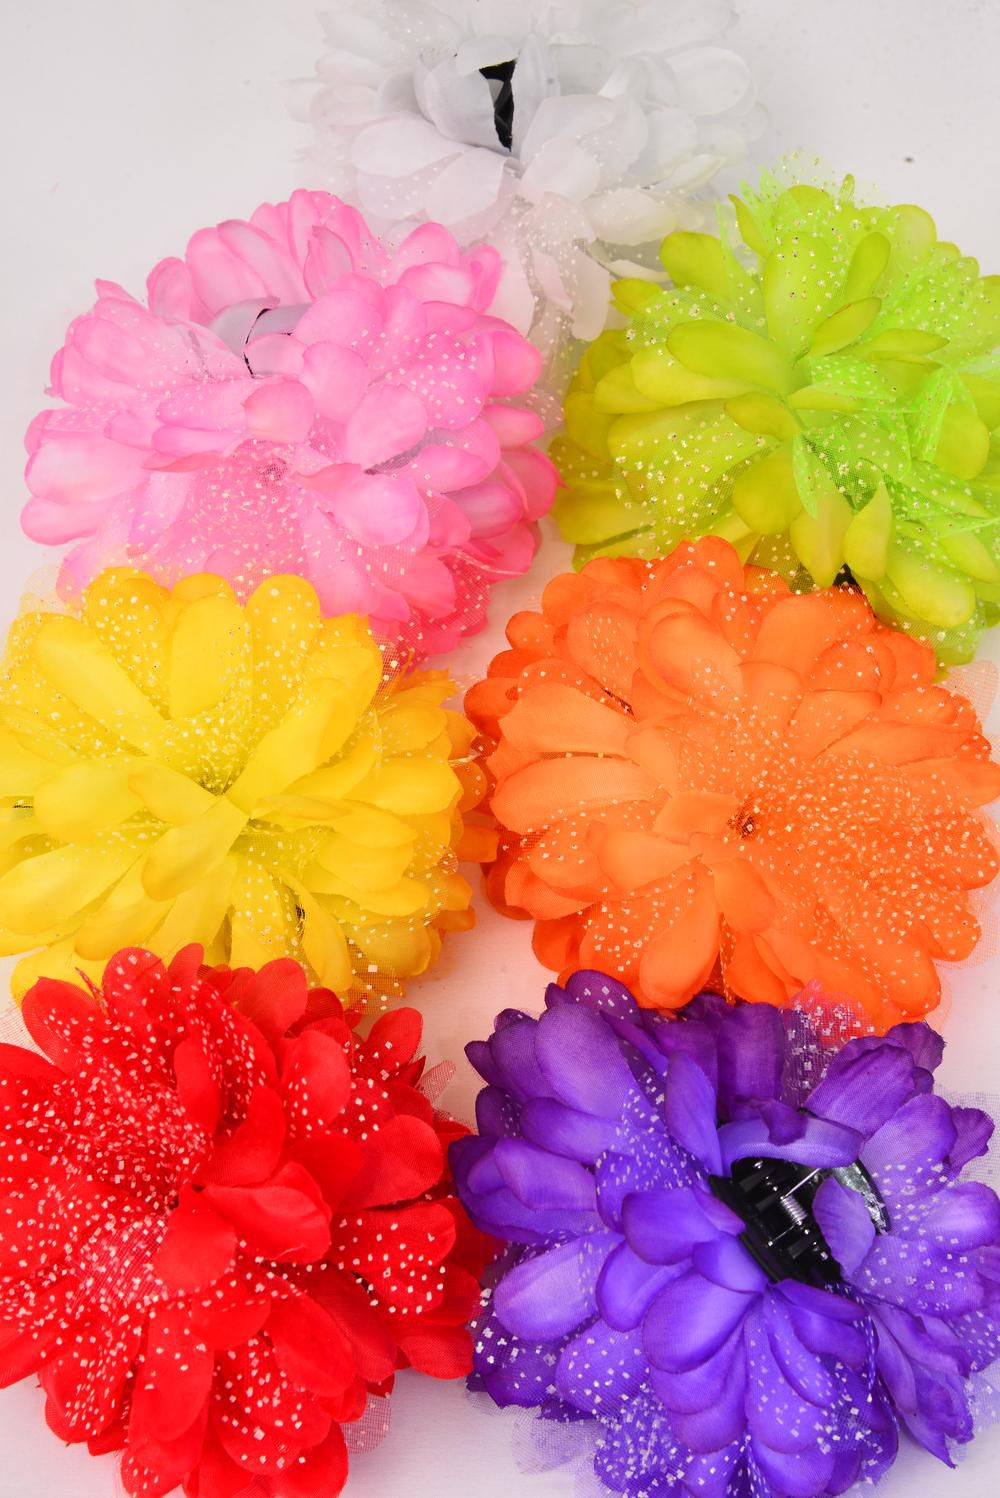 "Jaw Clip Flower Bouquet Baby Breath/DZ Flower Size-5.5"" Wide,Jaw Clip-3.5"" Wide,2 Red,2 Yellow,2 Purple,2 Pink,2 White,1 Orange,1 Lime,7 Color Mix,Hang Tag & UPC Code,W Clear Box -"